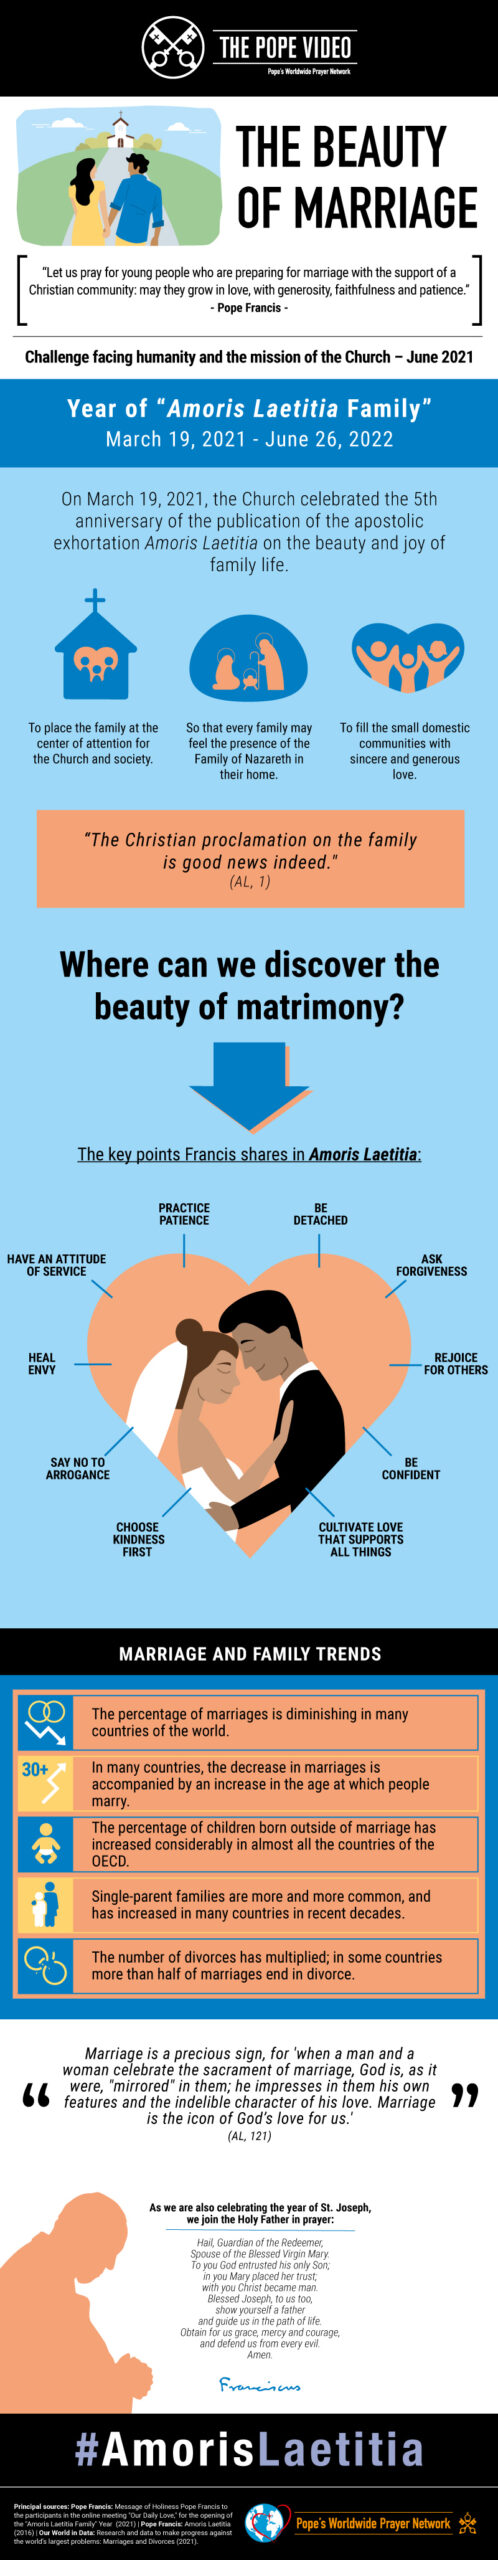 Infographic - TPV 6 2021 EN - The beauty of marriage